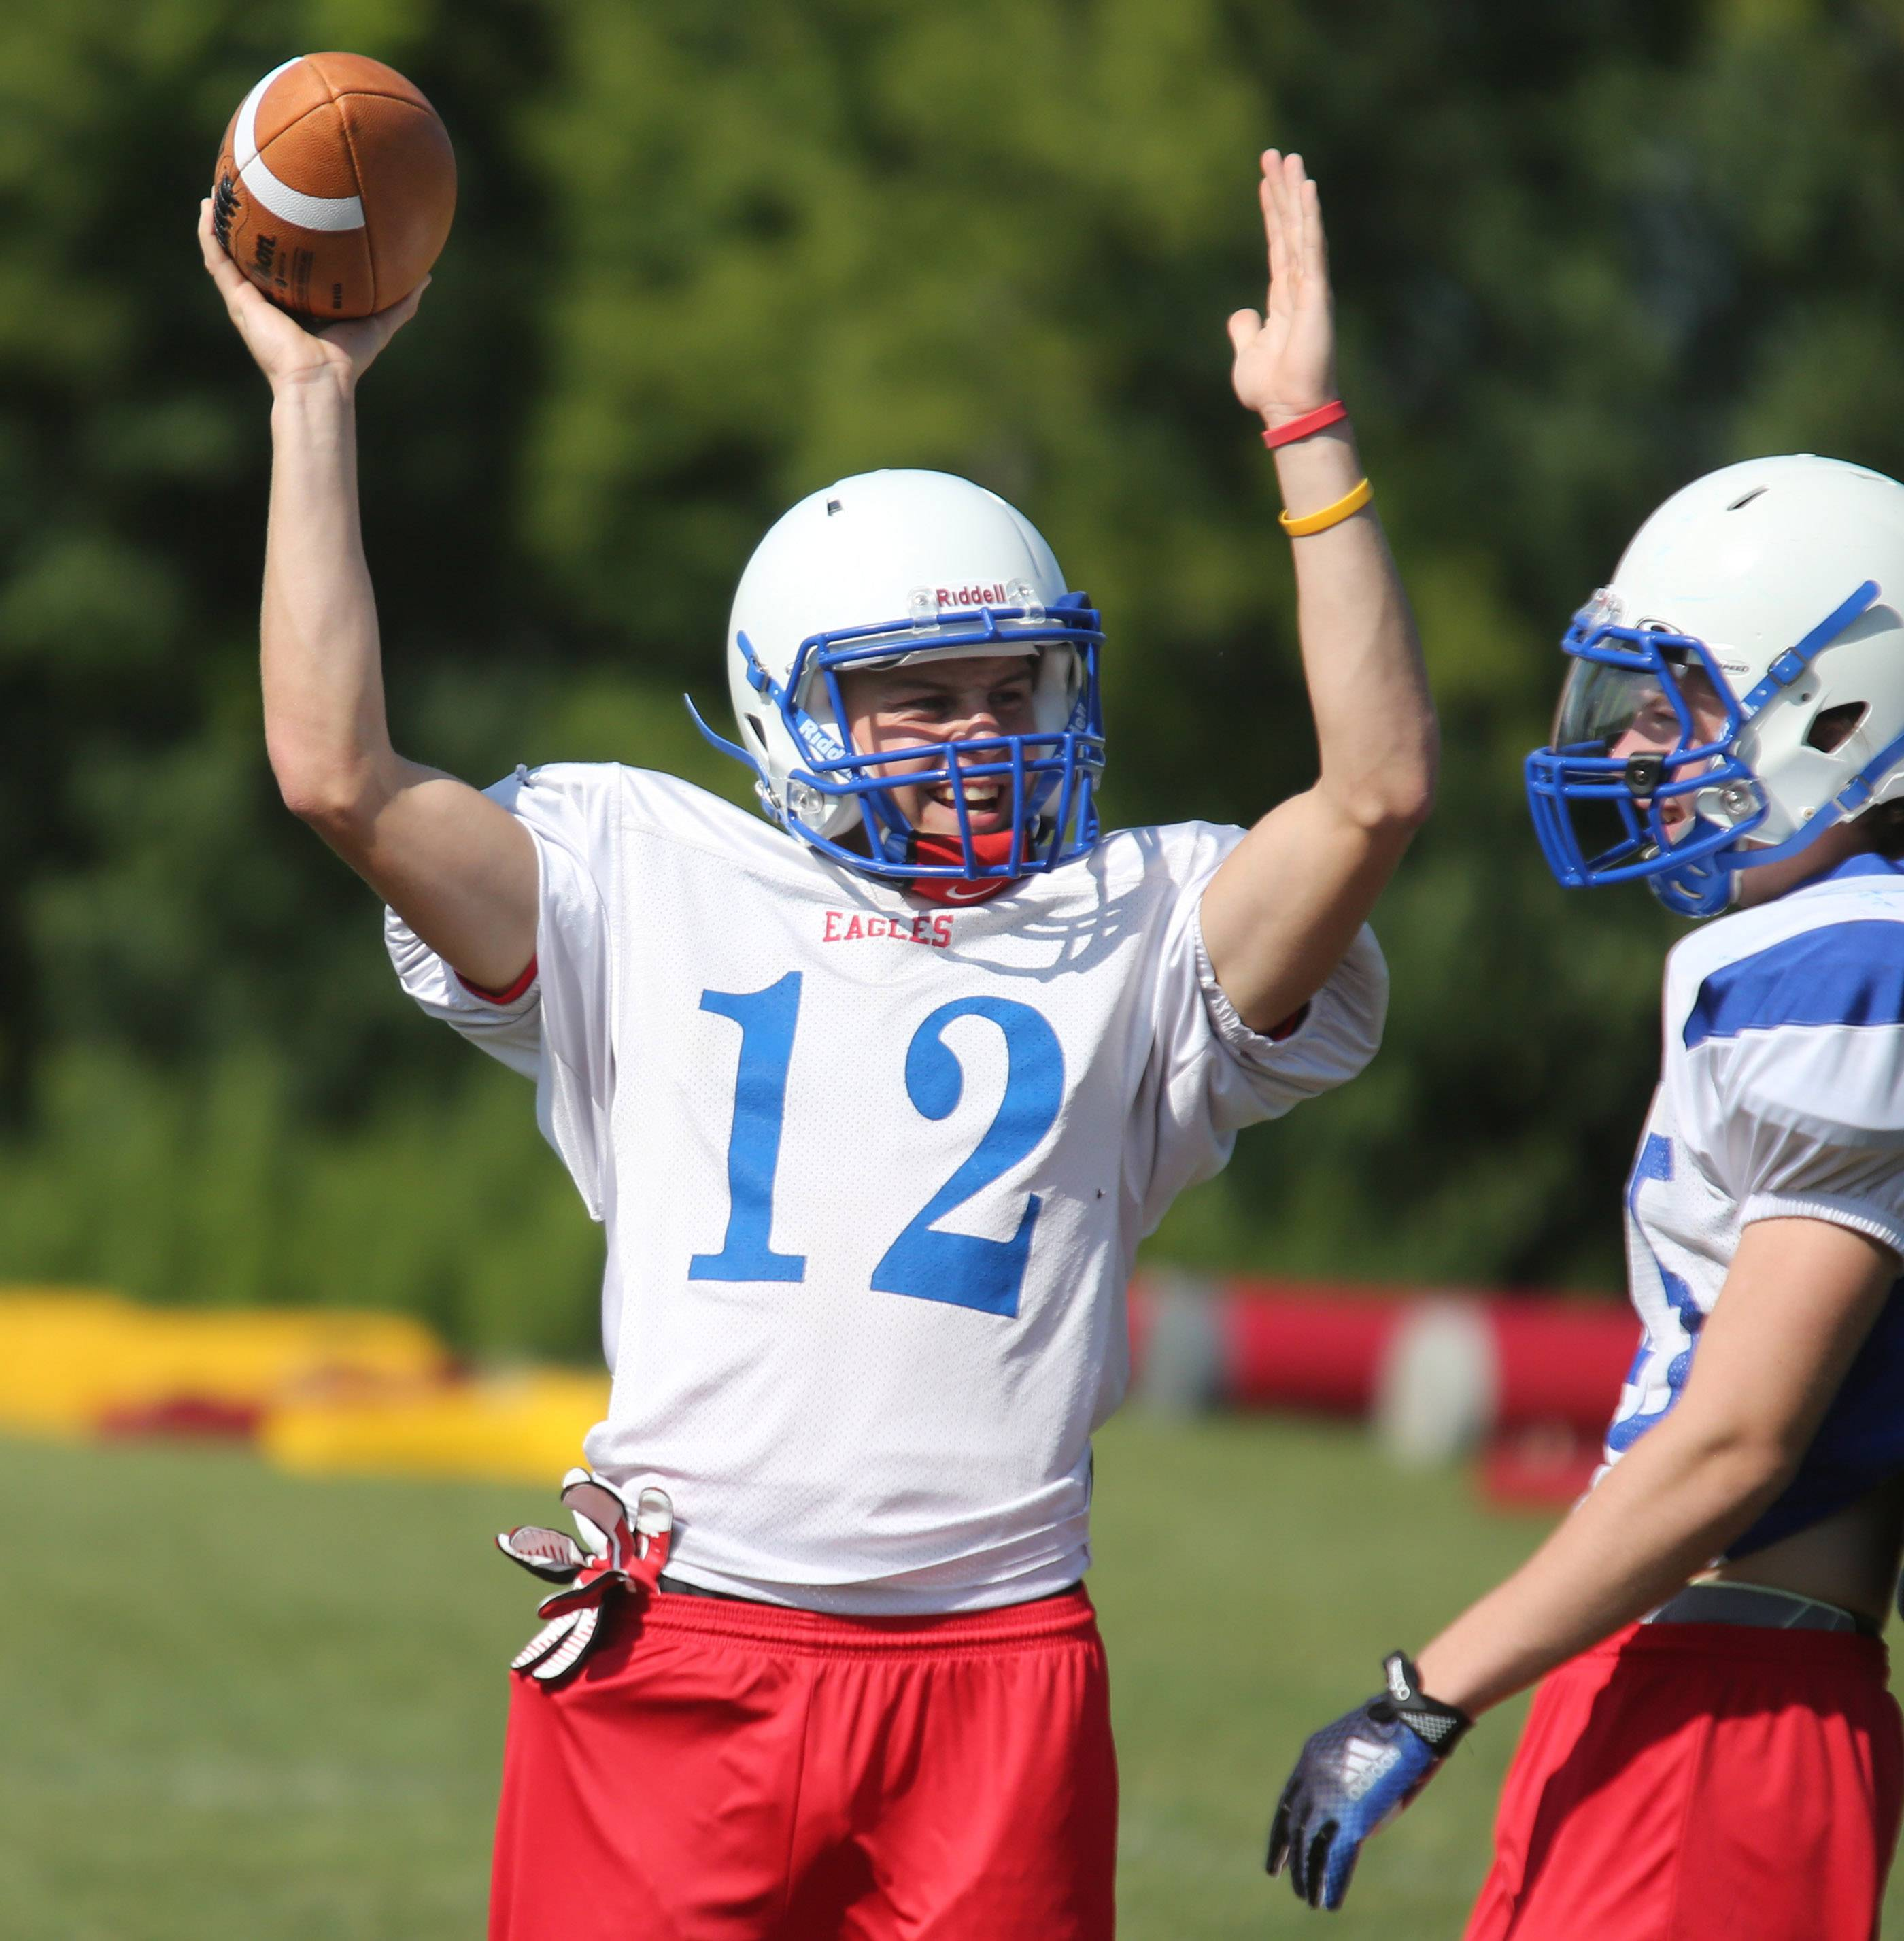 Lakes quarterback Jake Balliu signals he is expecting a touchdown on a play during Lakes football practice on Friday in Lake Villa.